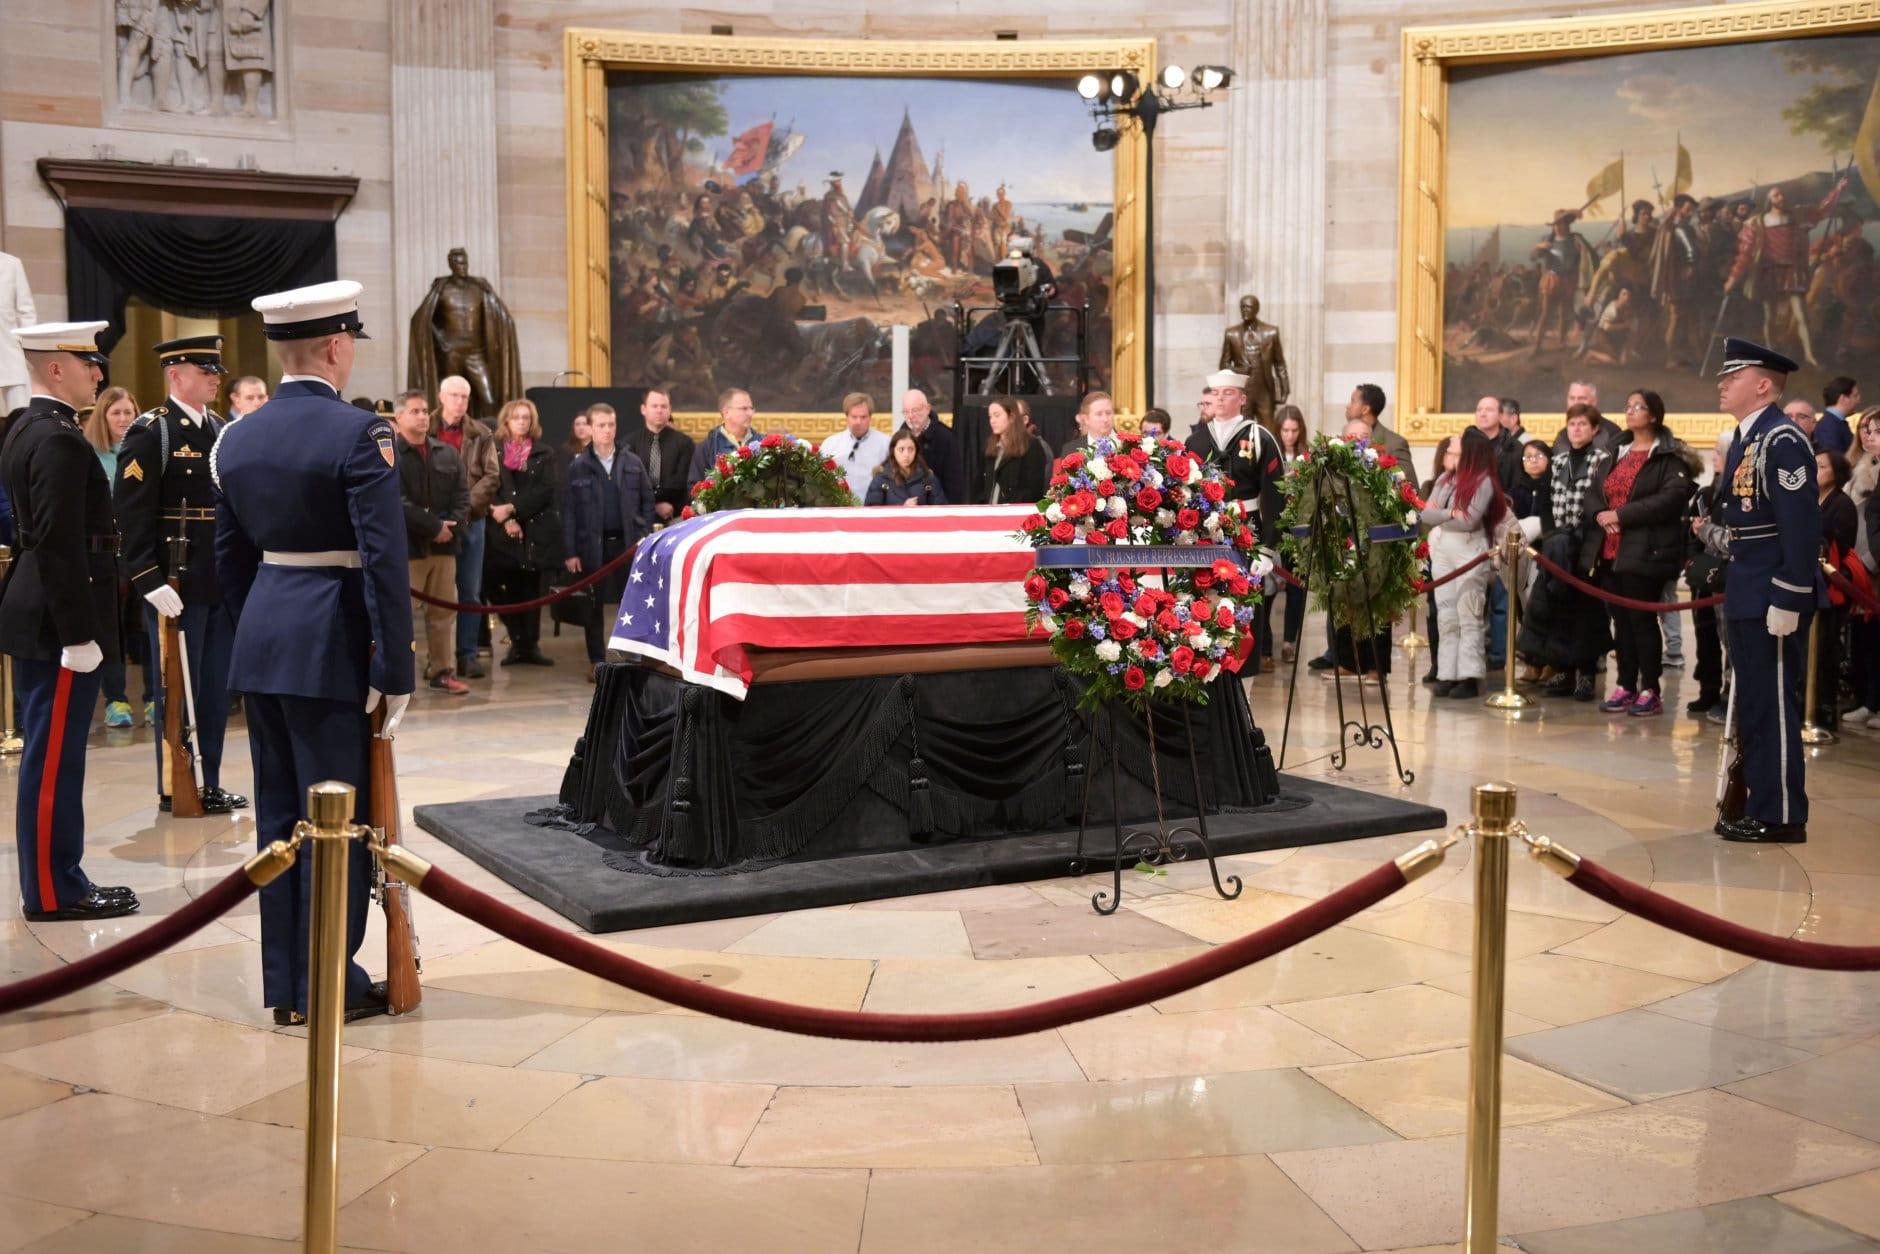 "President George H.W. Bush lying in state at the U.S. Capitol Rotunda. (Courtesy Shannon Finney/<a href=""https://www.shannonfinneyphotography.com/index"" target=""_blank"" rel=""noopener noreferrer"">shannonfinneyphotography.com</a>)"